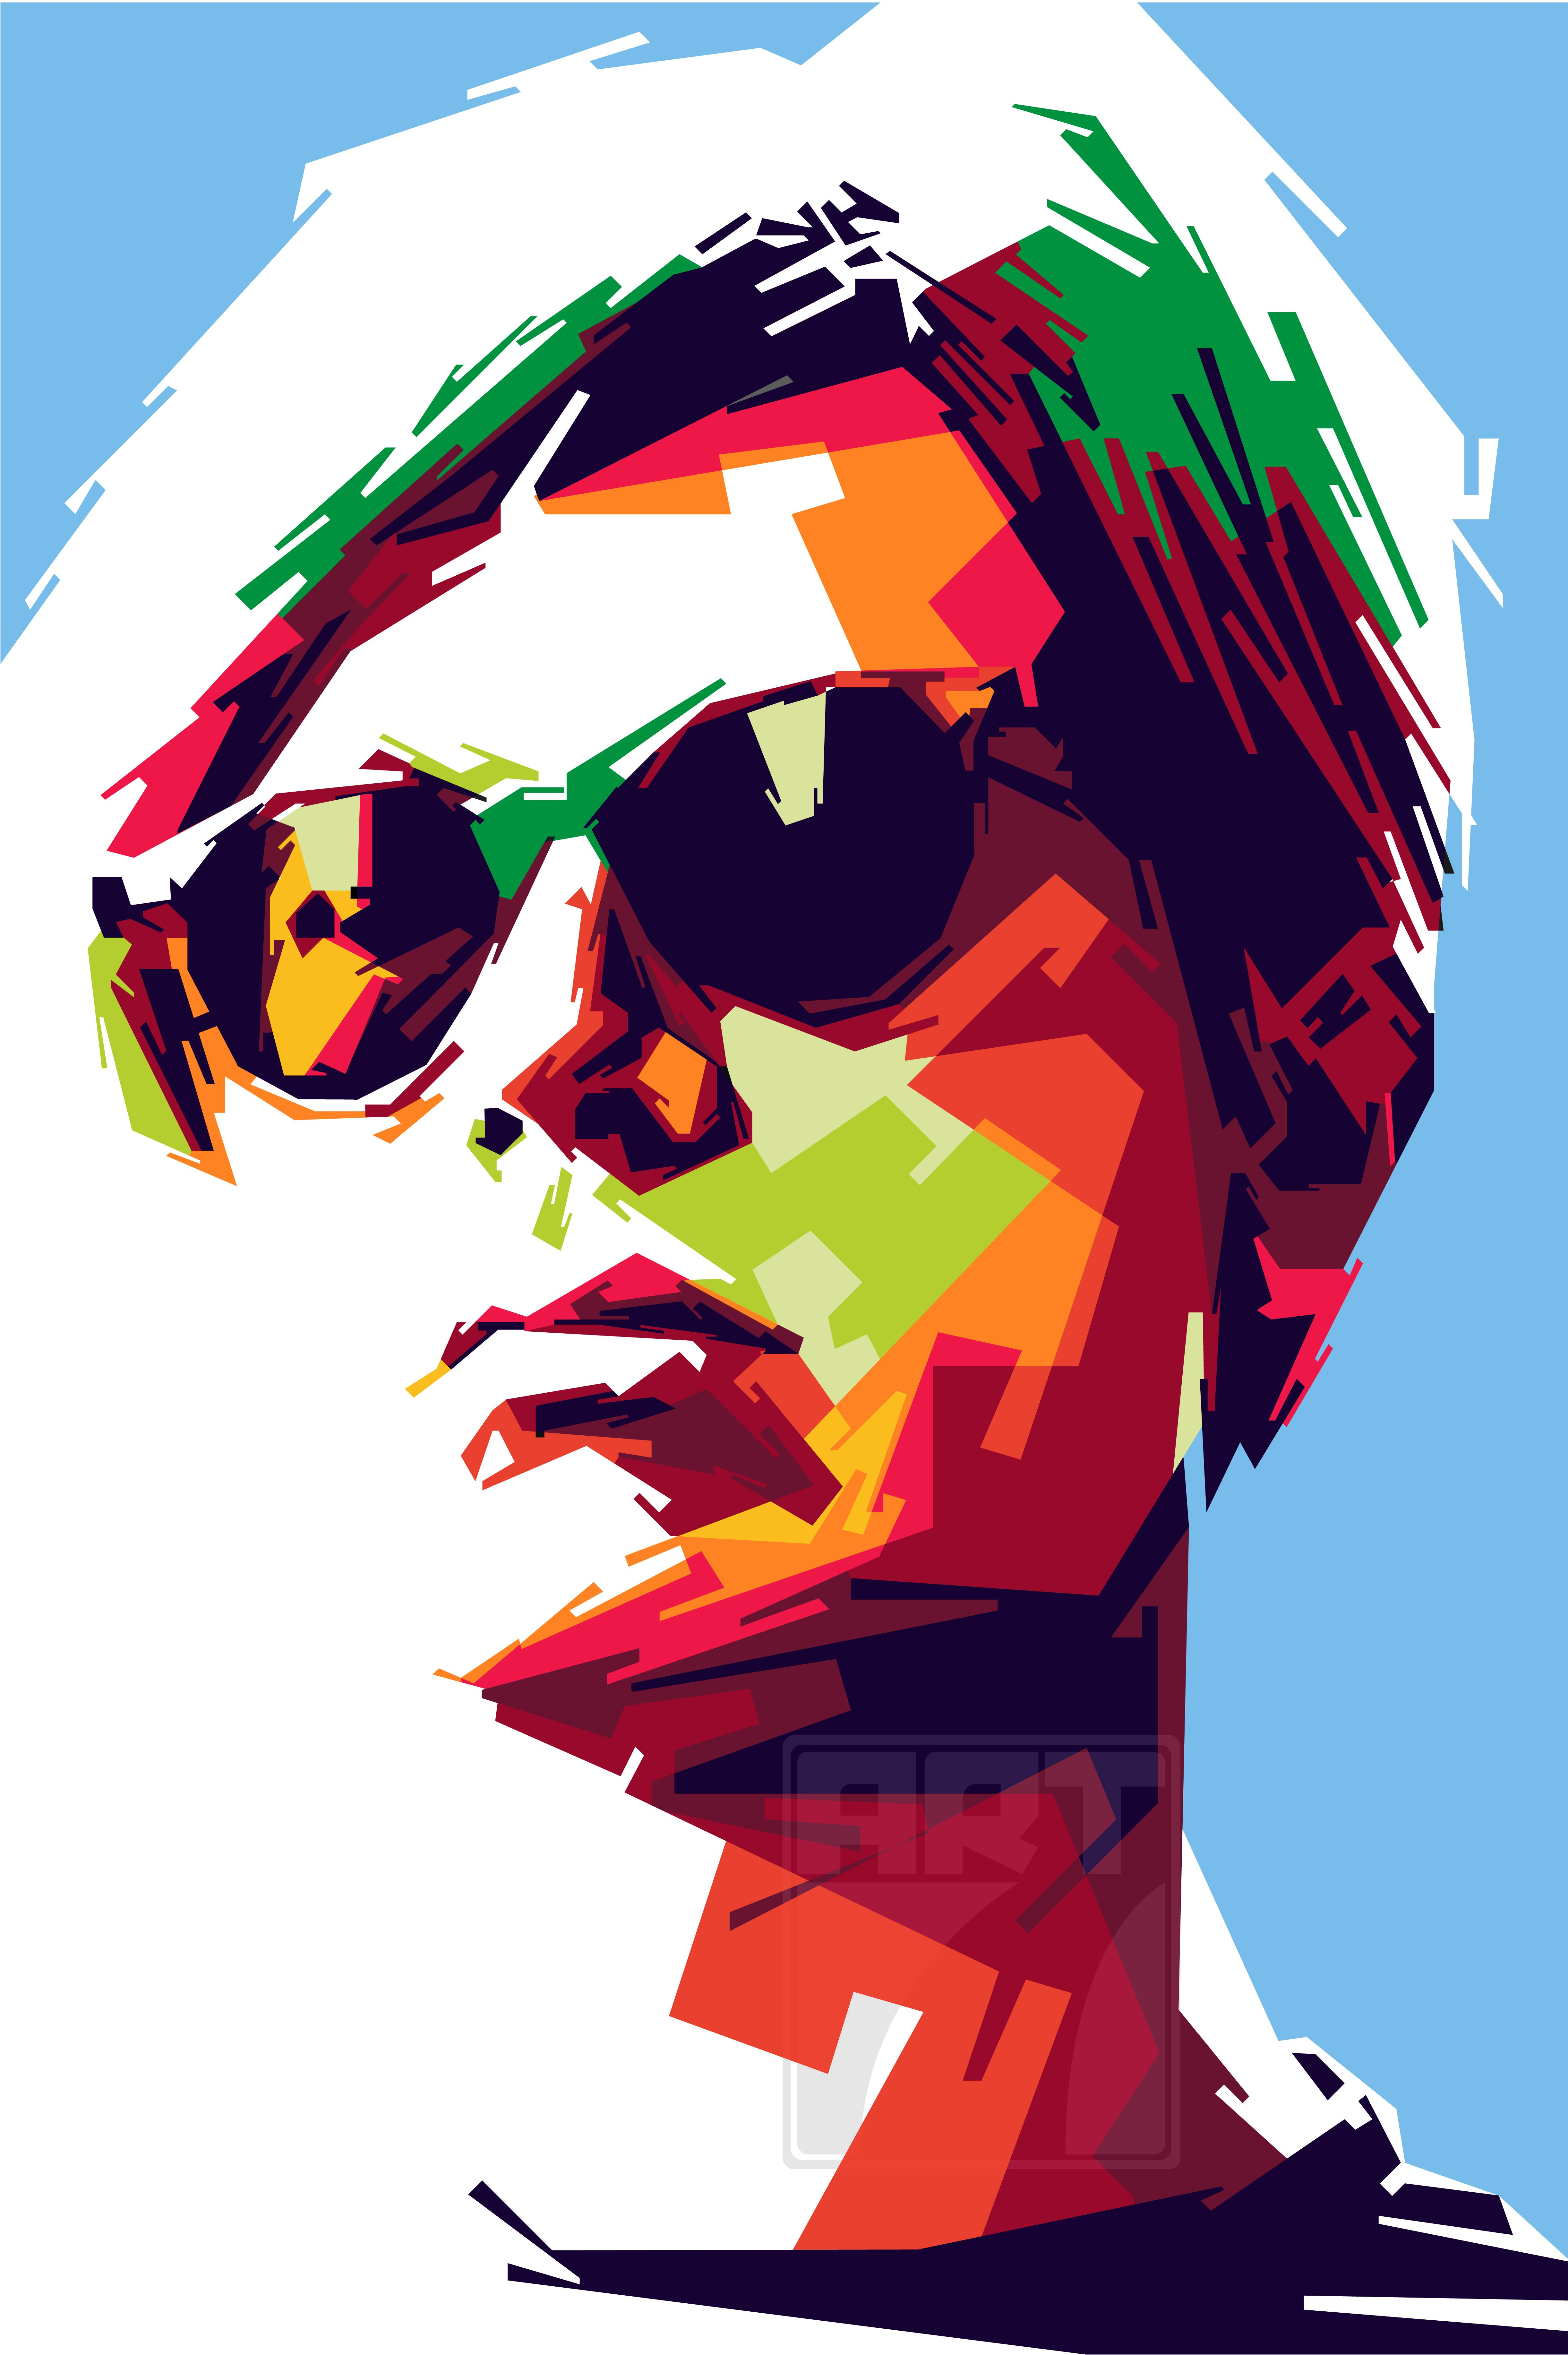 Andy Warhol In WPAP Pop Art style from Indonesia, Pop